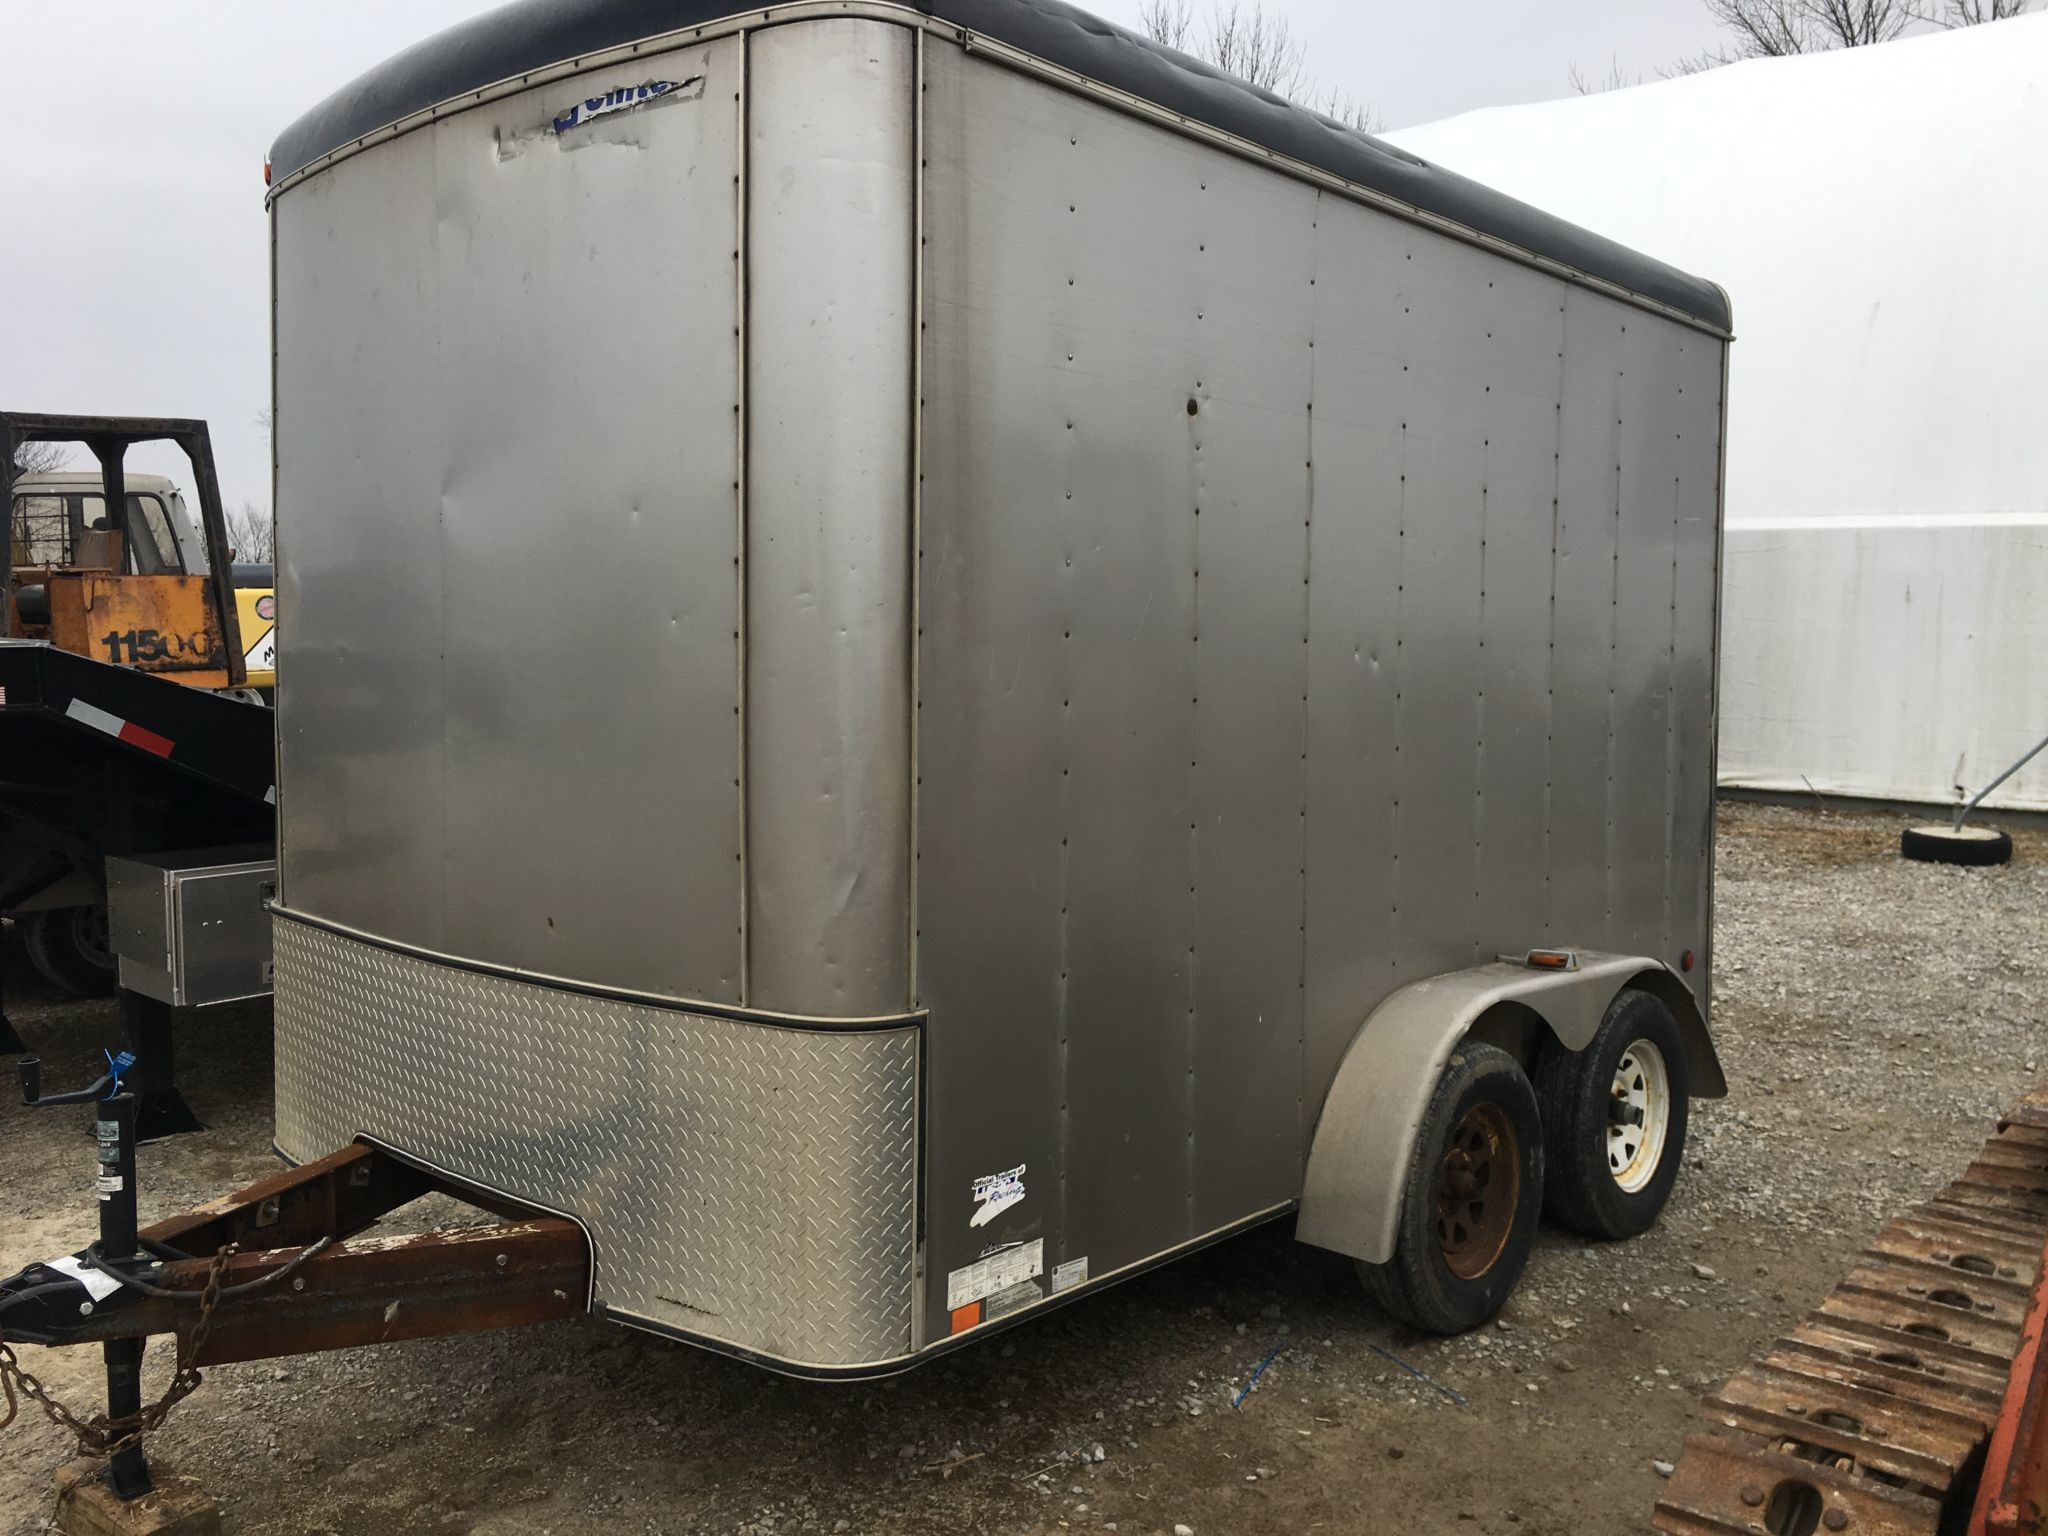 7' x 12' tandem axle enclosed traile